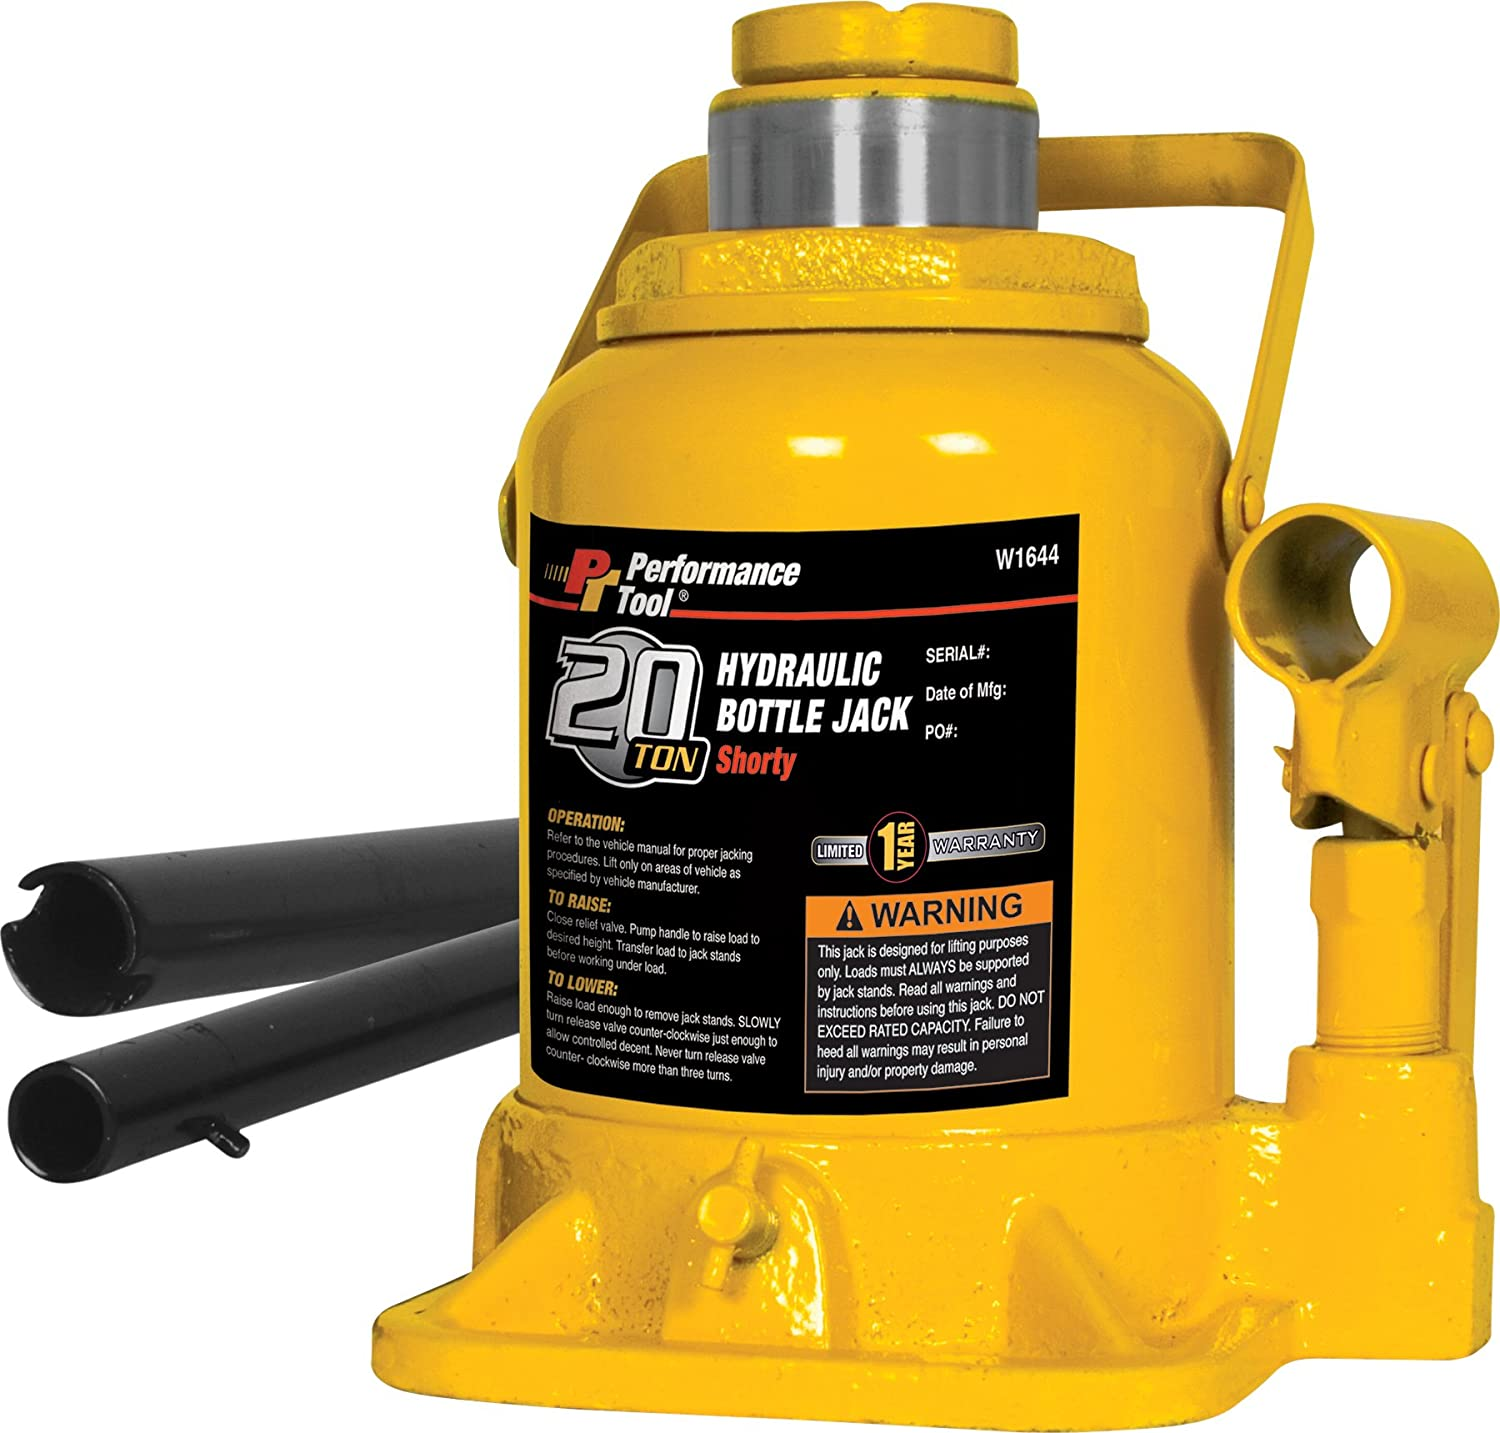 Performance Tool W1643 12 Ton (24, 000 lbs.) Heavy Duty Shorty Bottle Jack Wilmar Corporation